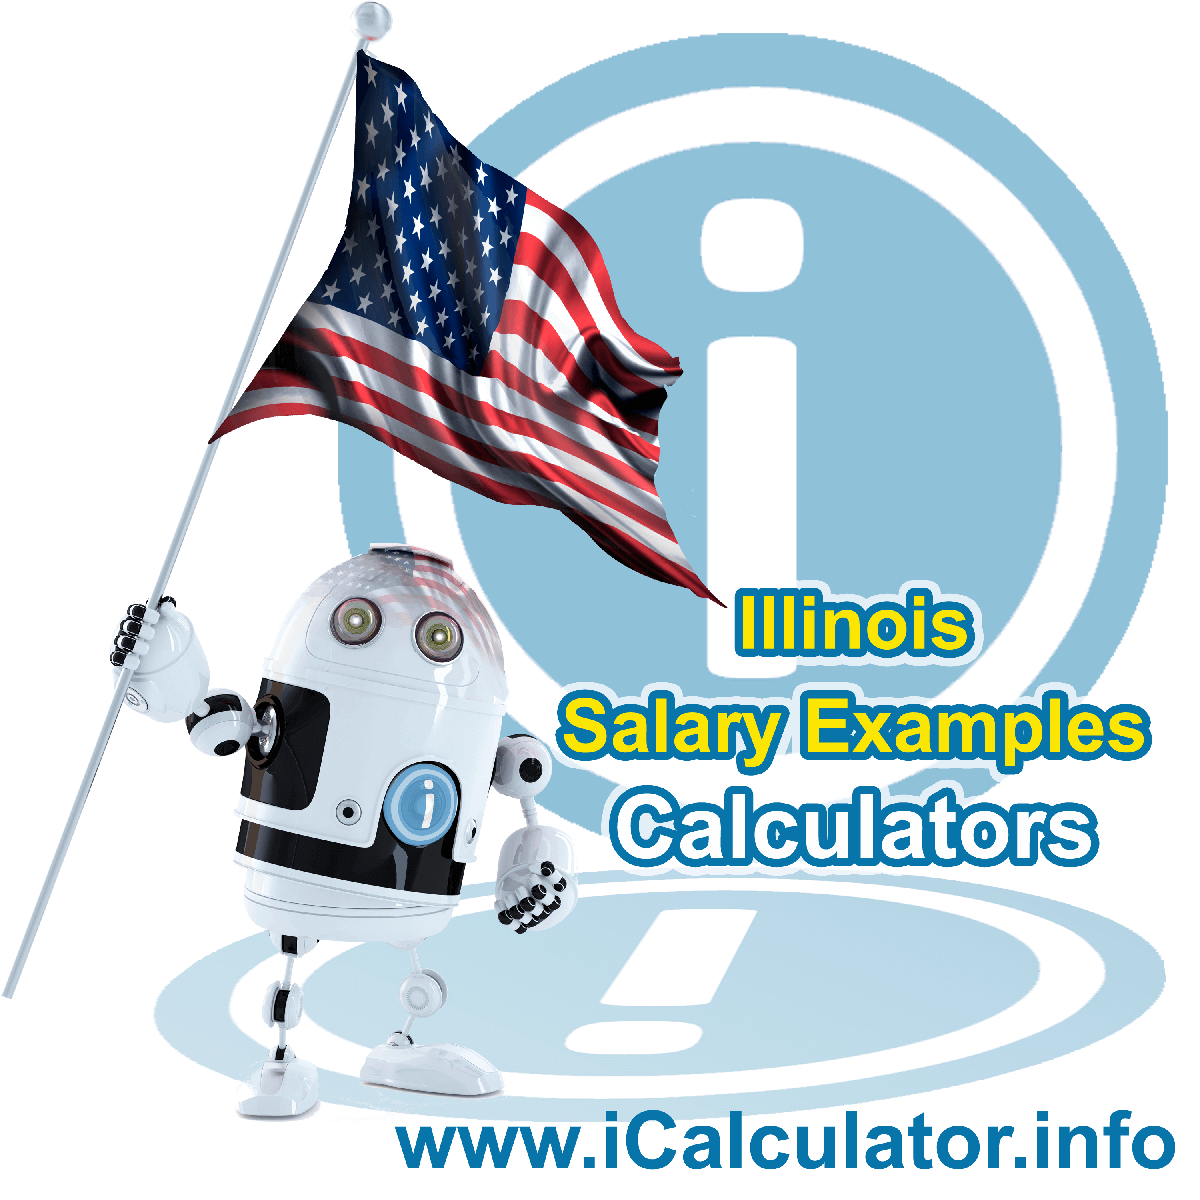 Illinois Salary Example for $100.00 in 2020 | iCalculator | $100.00 salary example for employee and employer paying Illinois State tincome taxes. Detailed salary after tax calculation including Illinois State Tax, Federal State Tax, Medicare Deductions, Social Security, Capital Gains and other income tax and salary deductions complete with supporting Illinois state tax tables